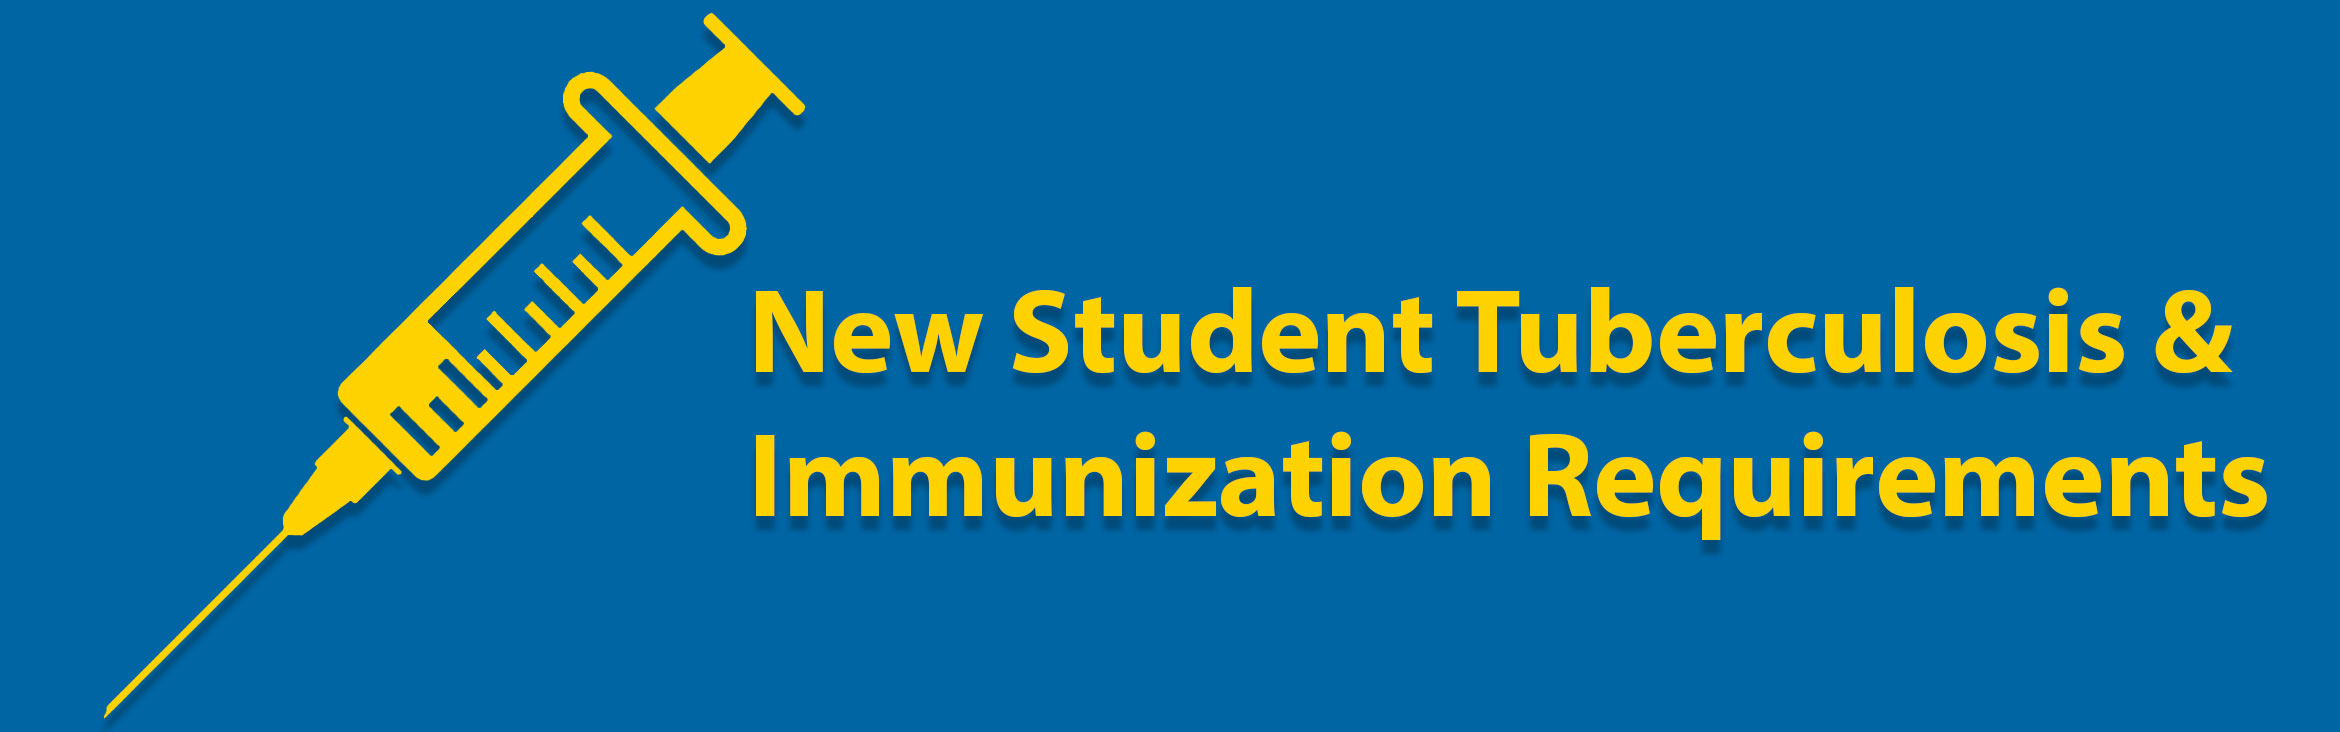 New Student Tuberculosis & Immunization Requirements